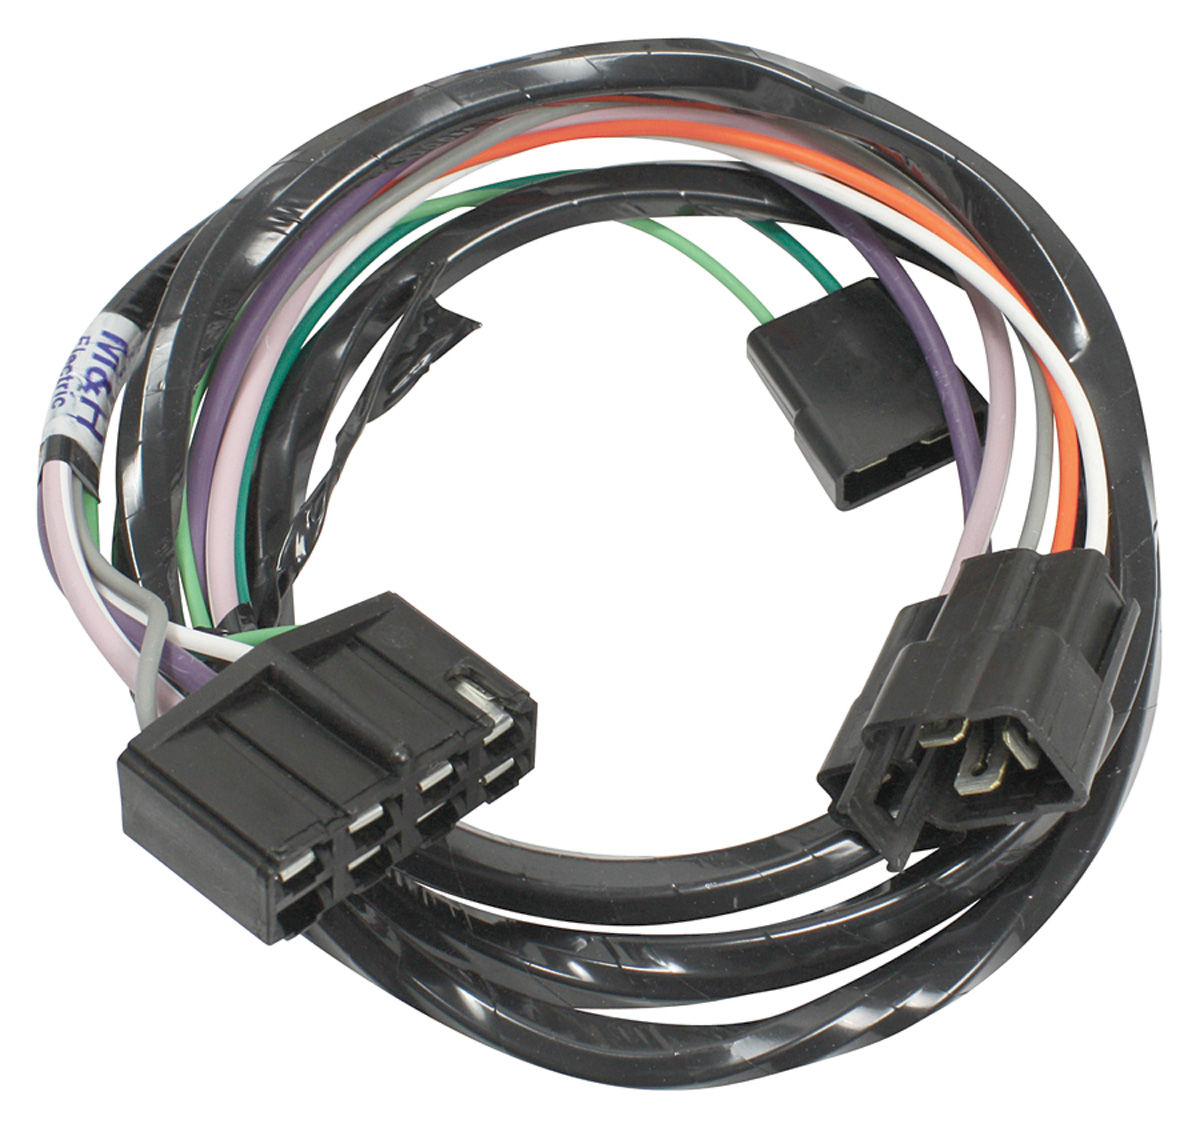 hight resolution of m h chevelle console extension harness automatic transmission fits 1970 chevelle console wiring harness